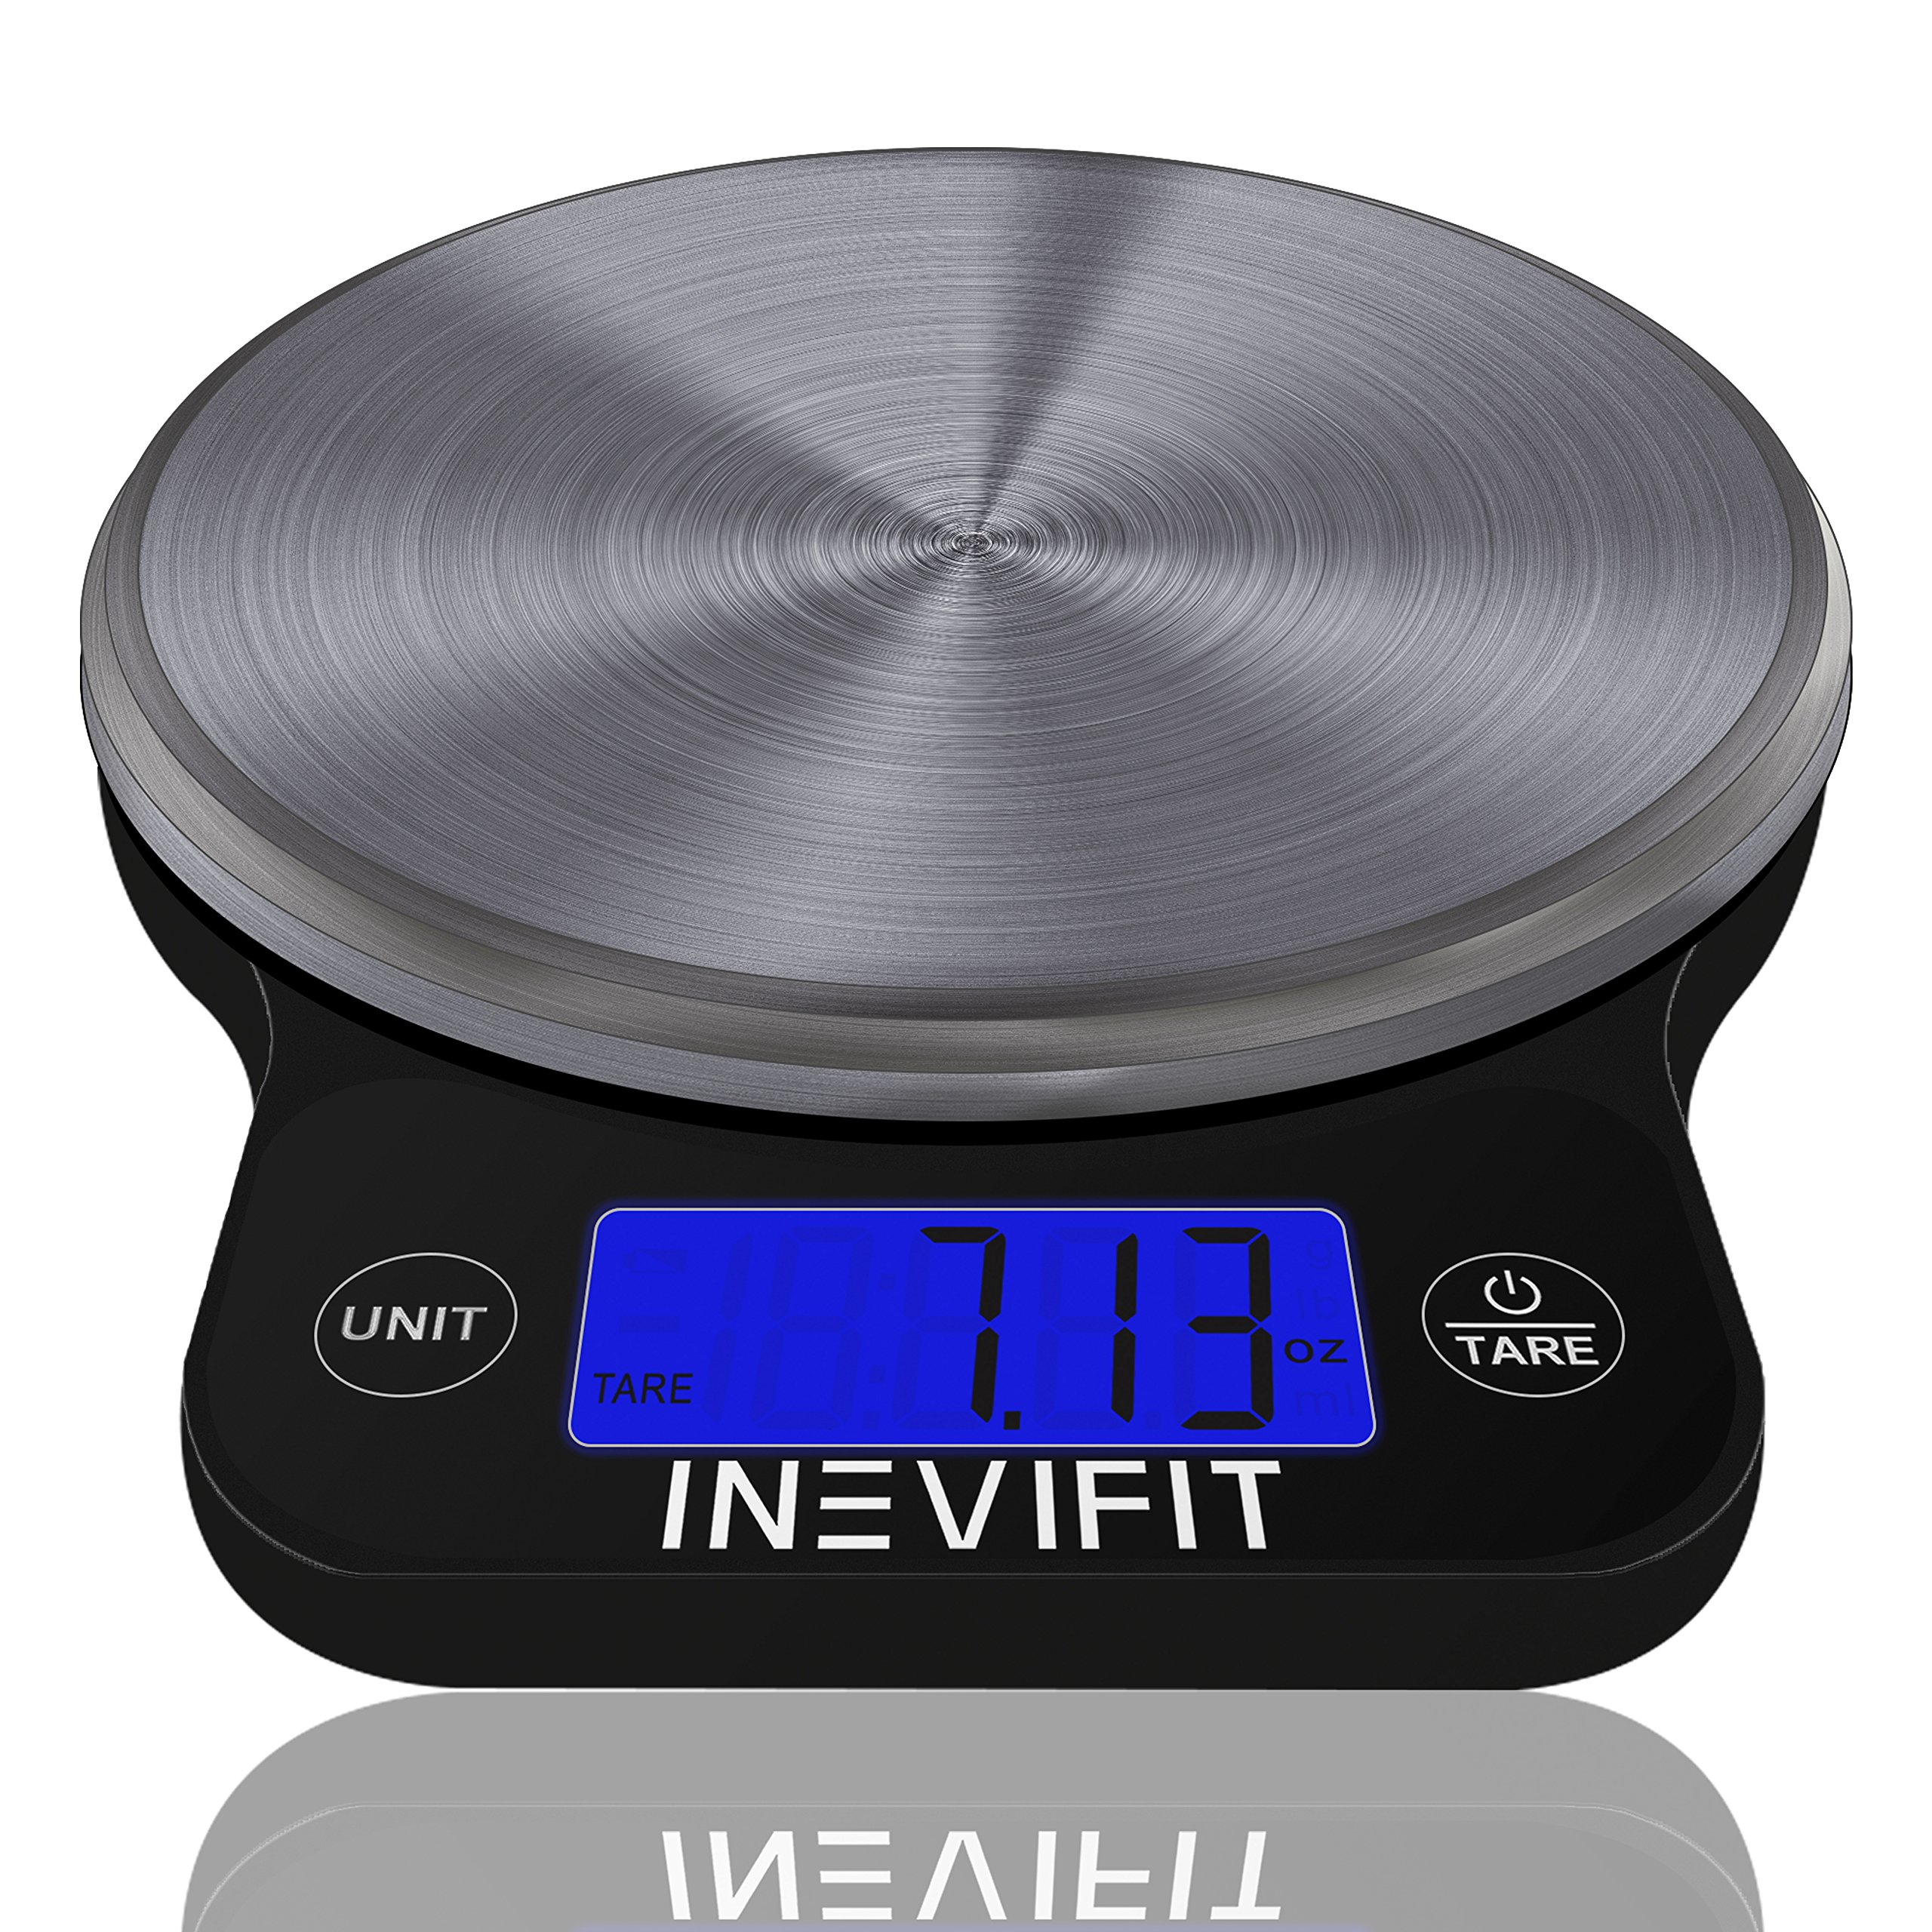 INEVIFIT DIGITAL KITCHEN SCALE, Highly Accurate Multifunction Food Scale 13 lbs 6kgs Max, Clean Modern Black with Premium Stainless Steel Finish. Includes Batteries & 5-Year Warranty by INEVIFIT